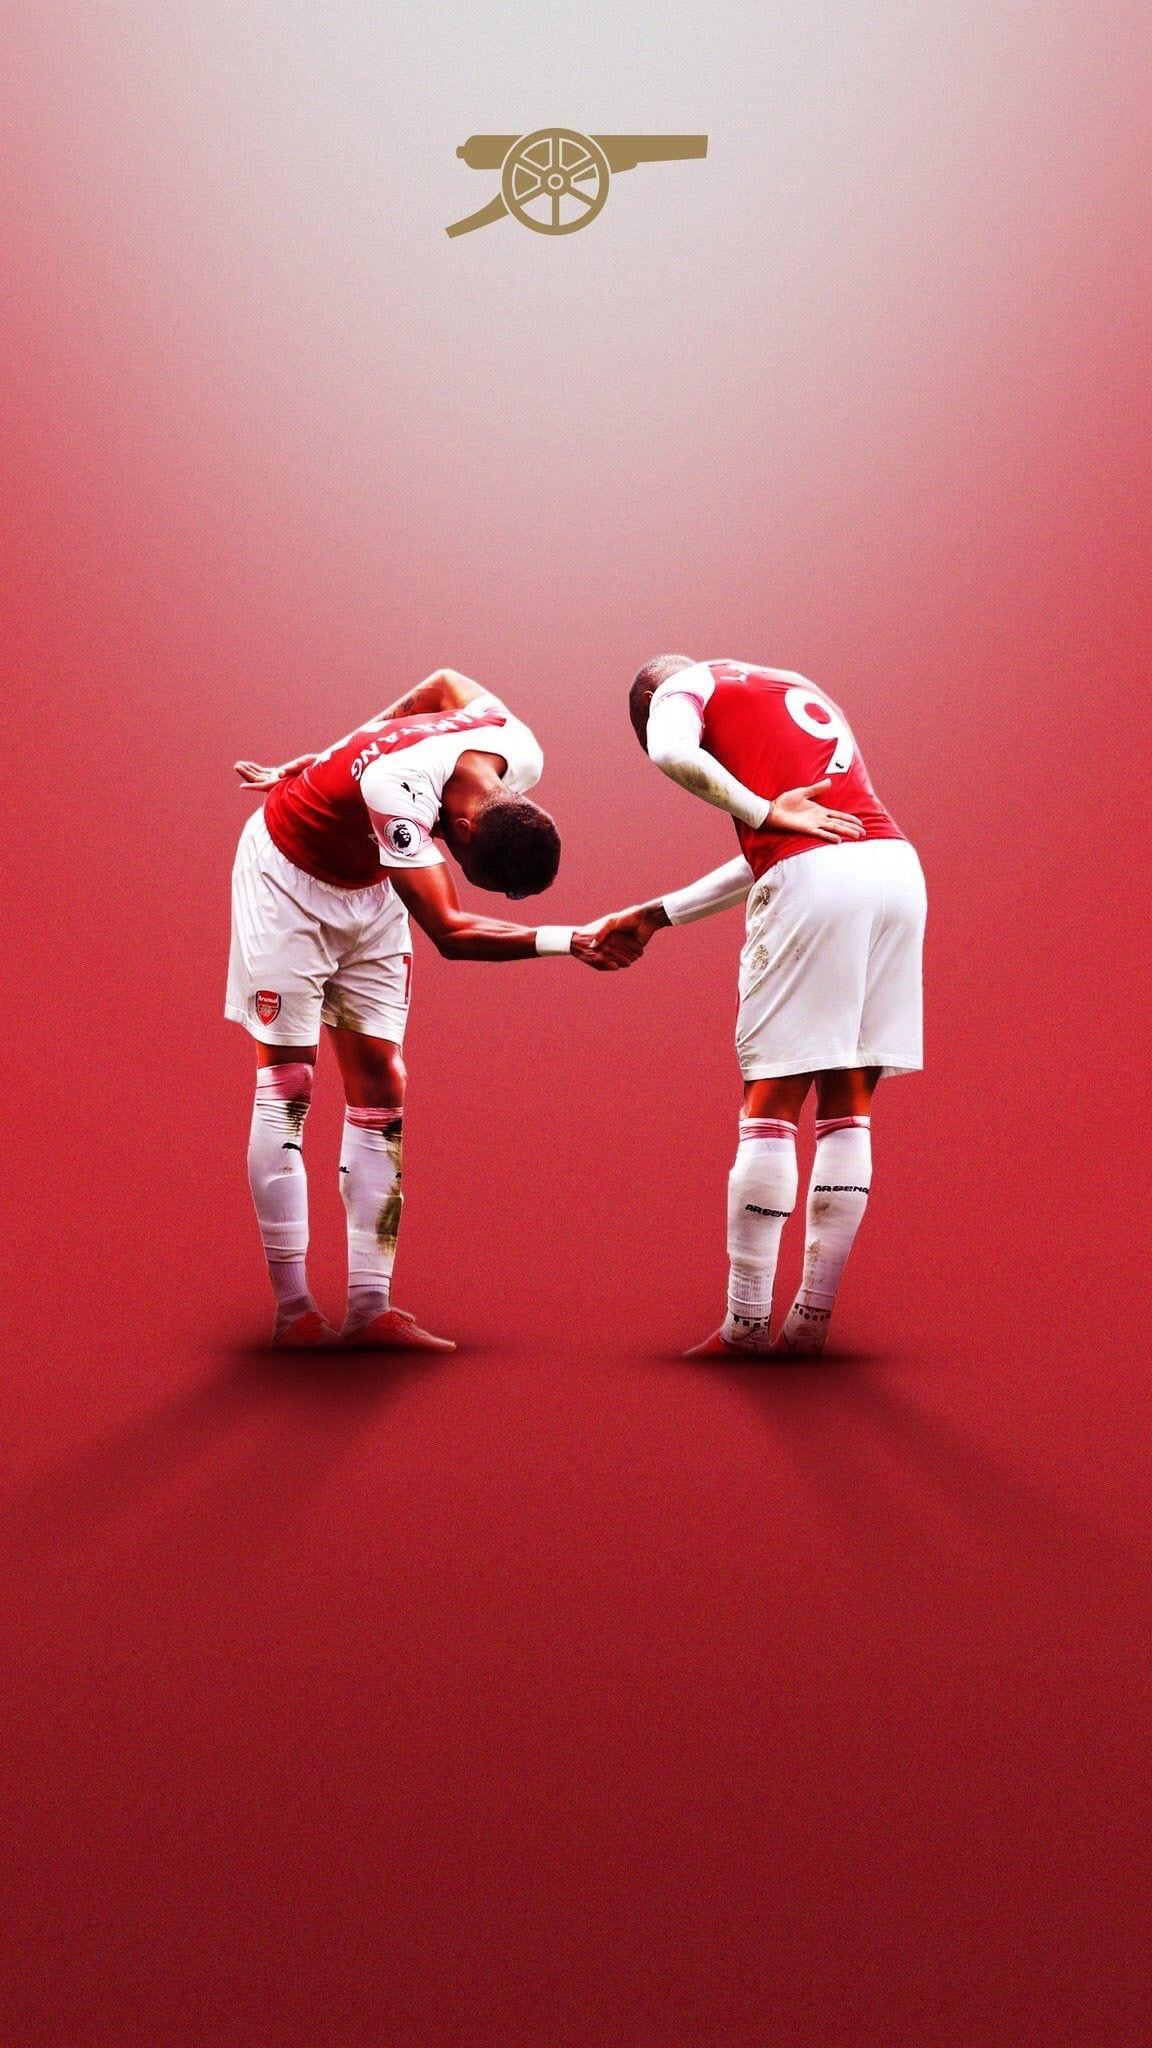 lacazette and aubameyang wallpapers